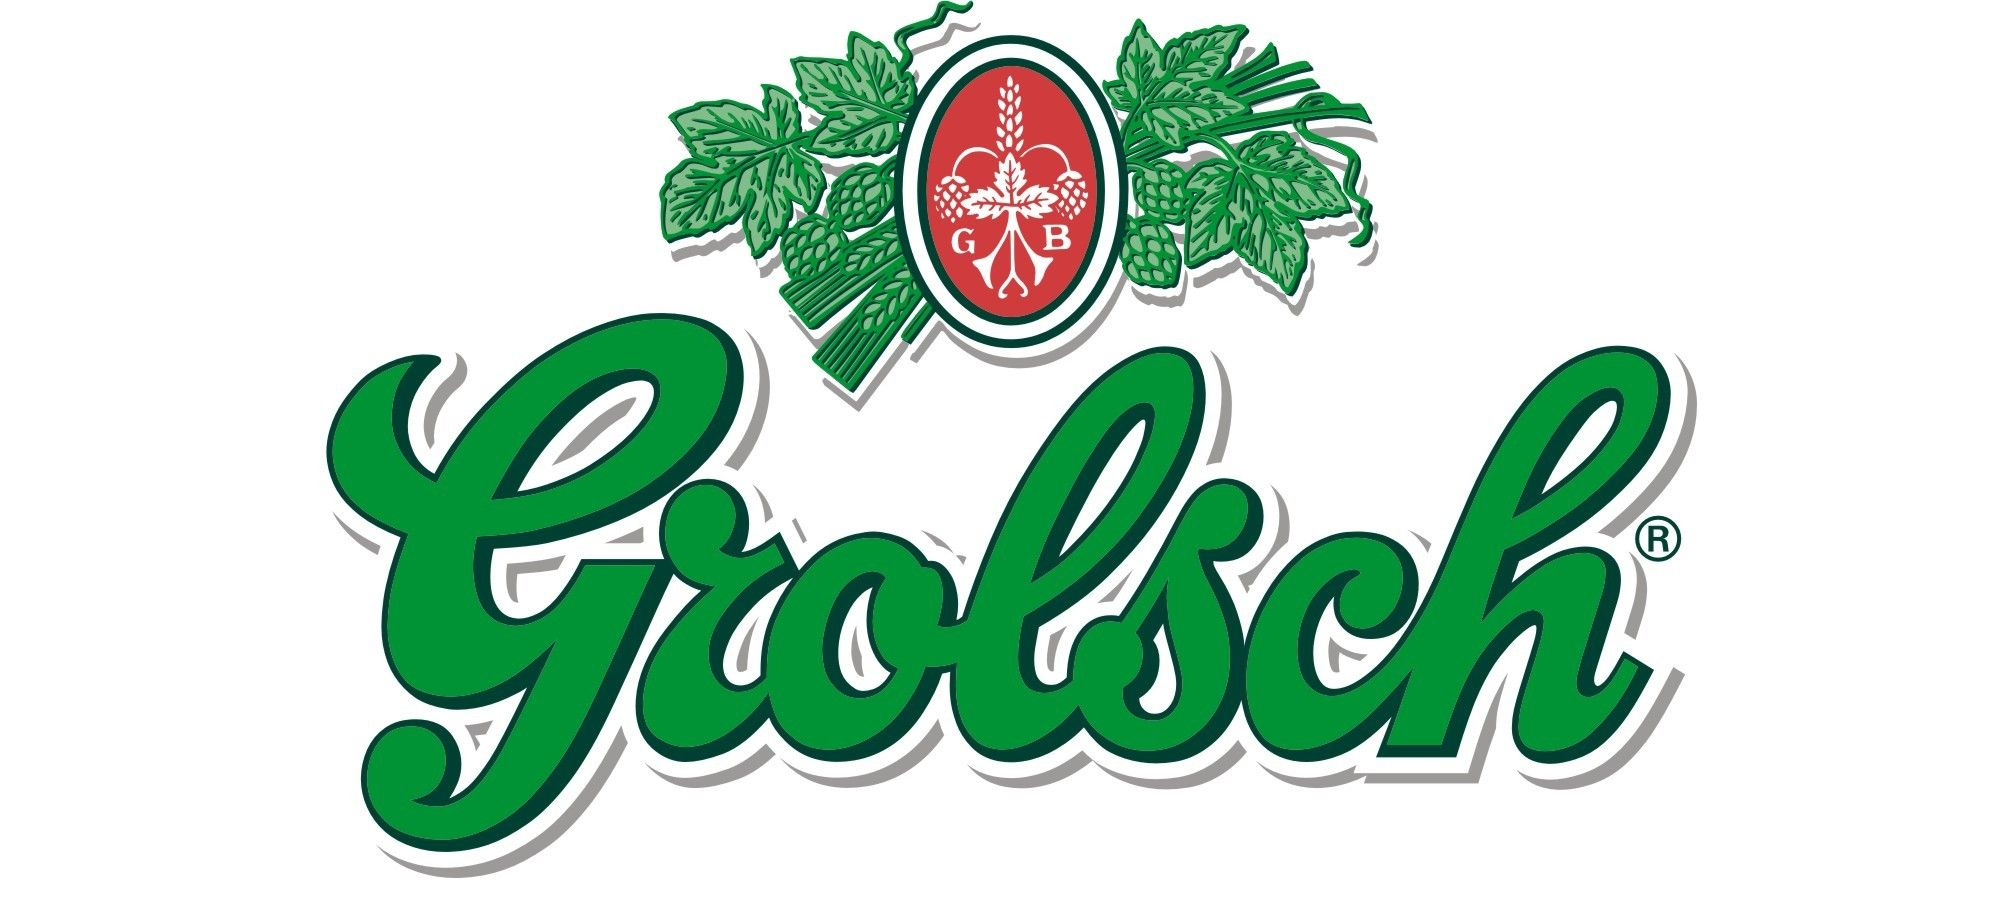 Grolsch Corporate Storytelling Powered by DataID